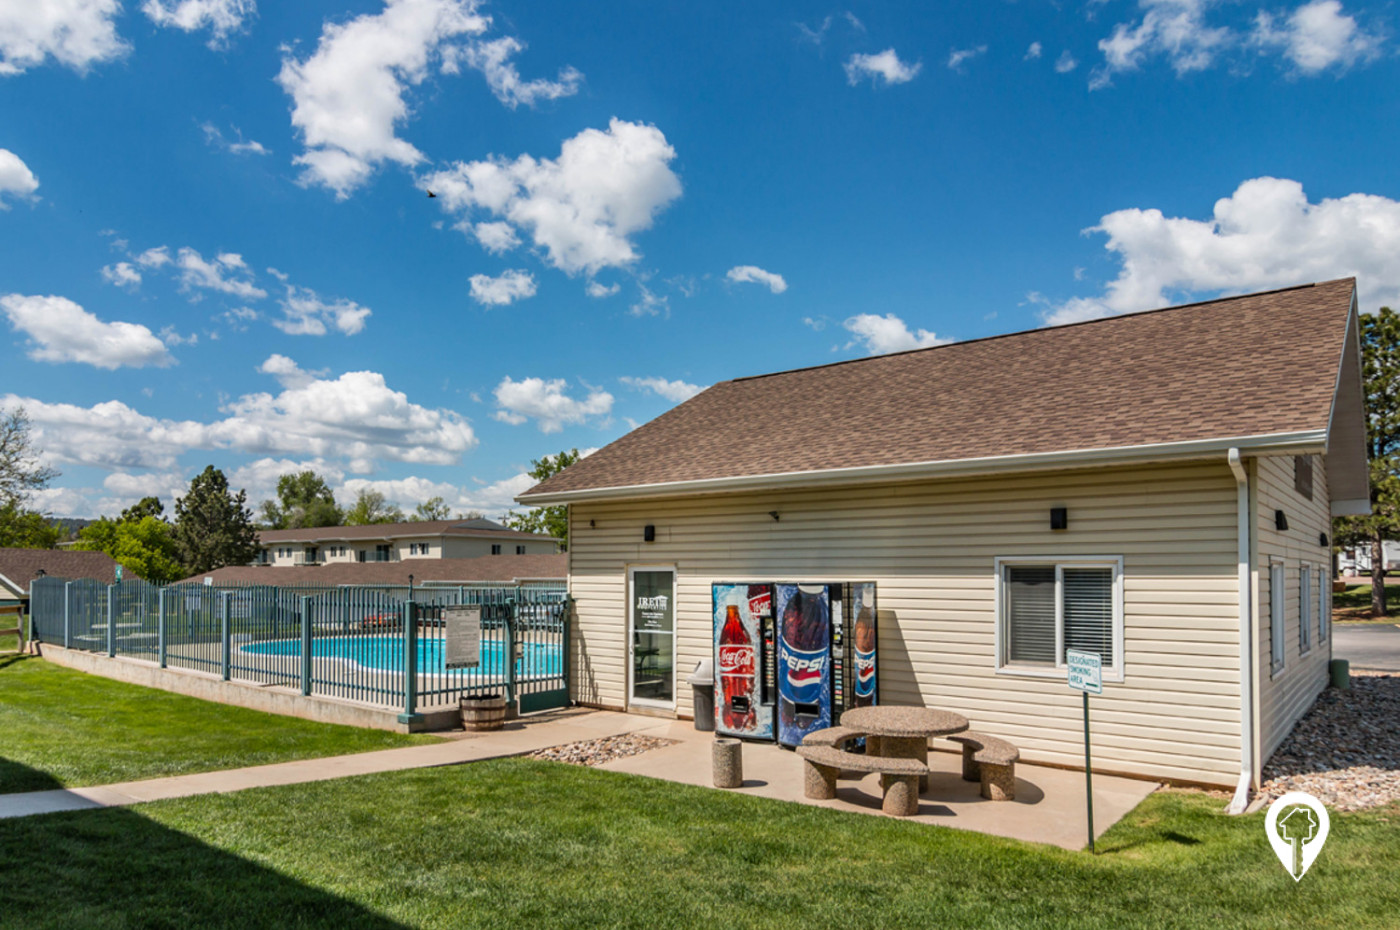 Canyon-Lake-Apartments-Have-Some-Fun-at-Clubhouse